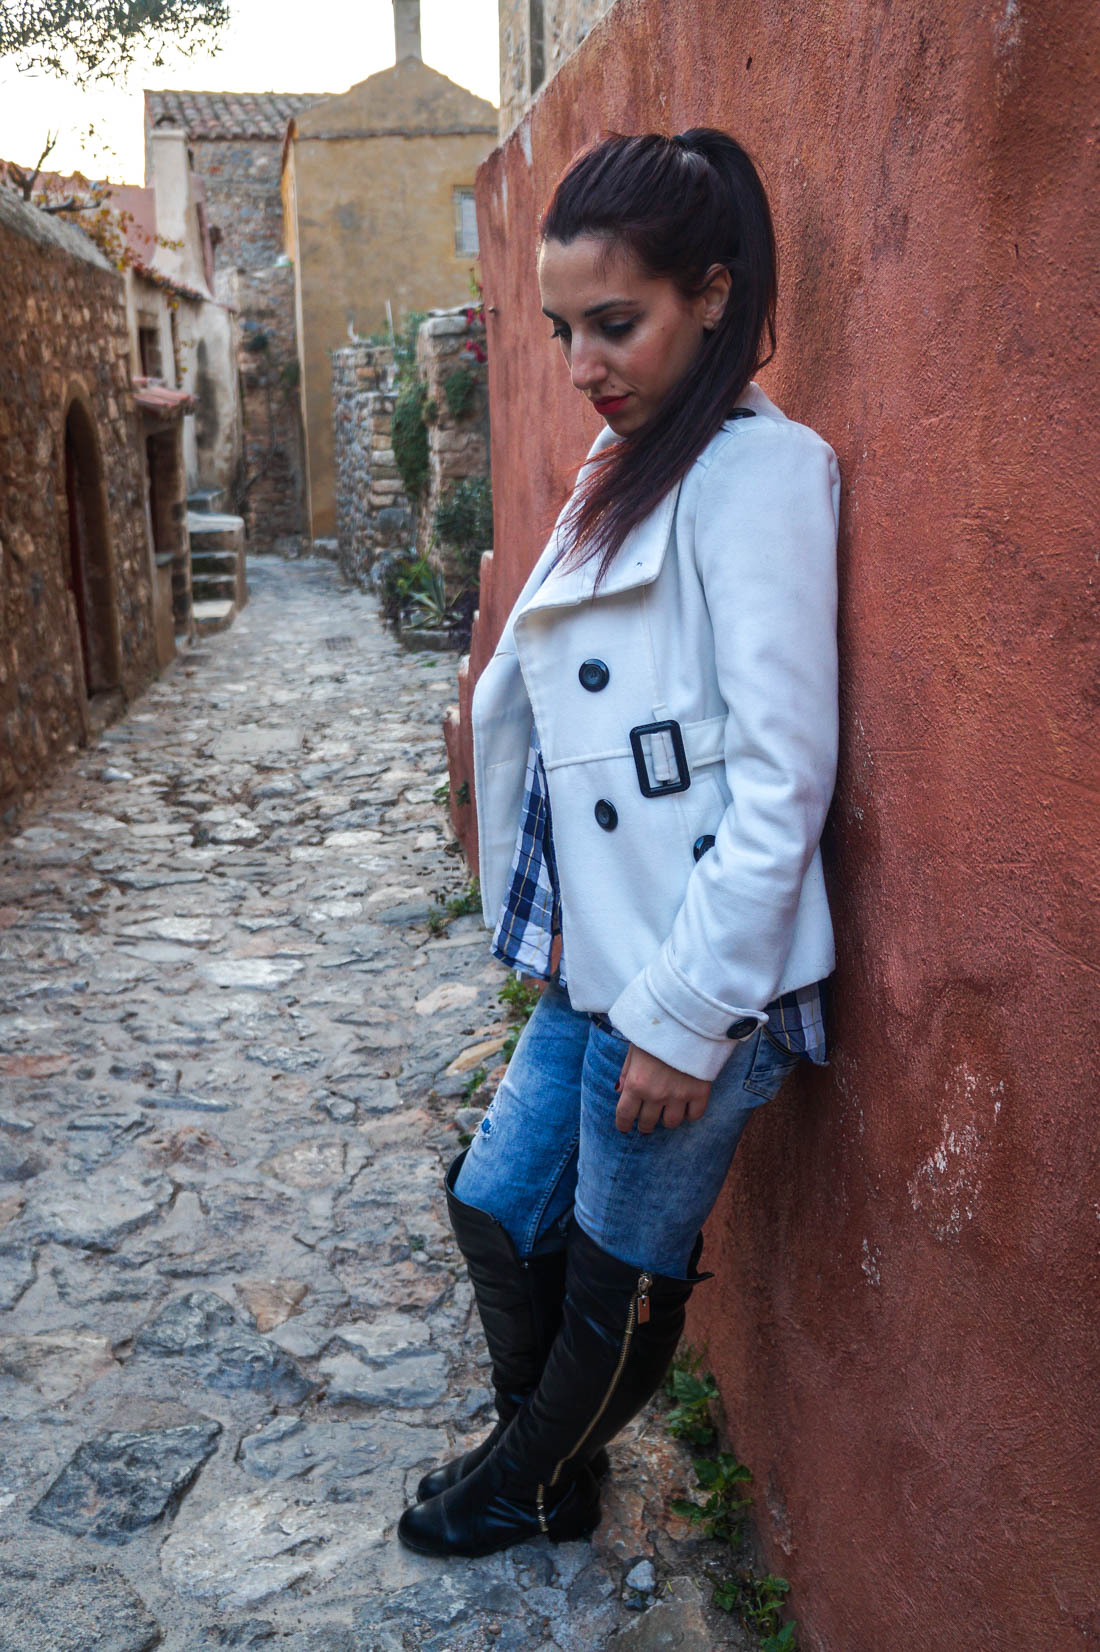 Monemvasia by Polina Paraskevopolou for lavienblog-Allrightsreserved